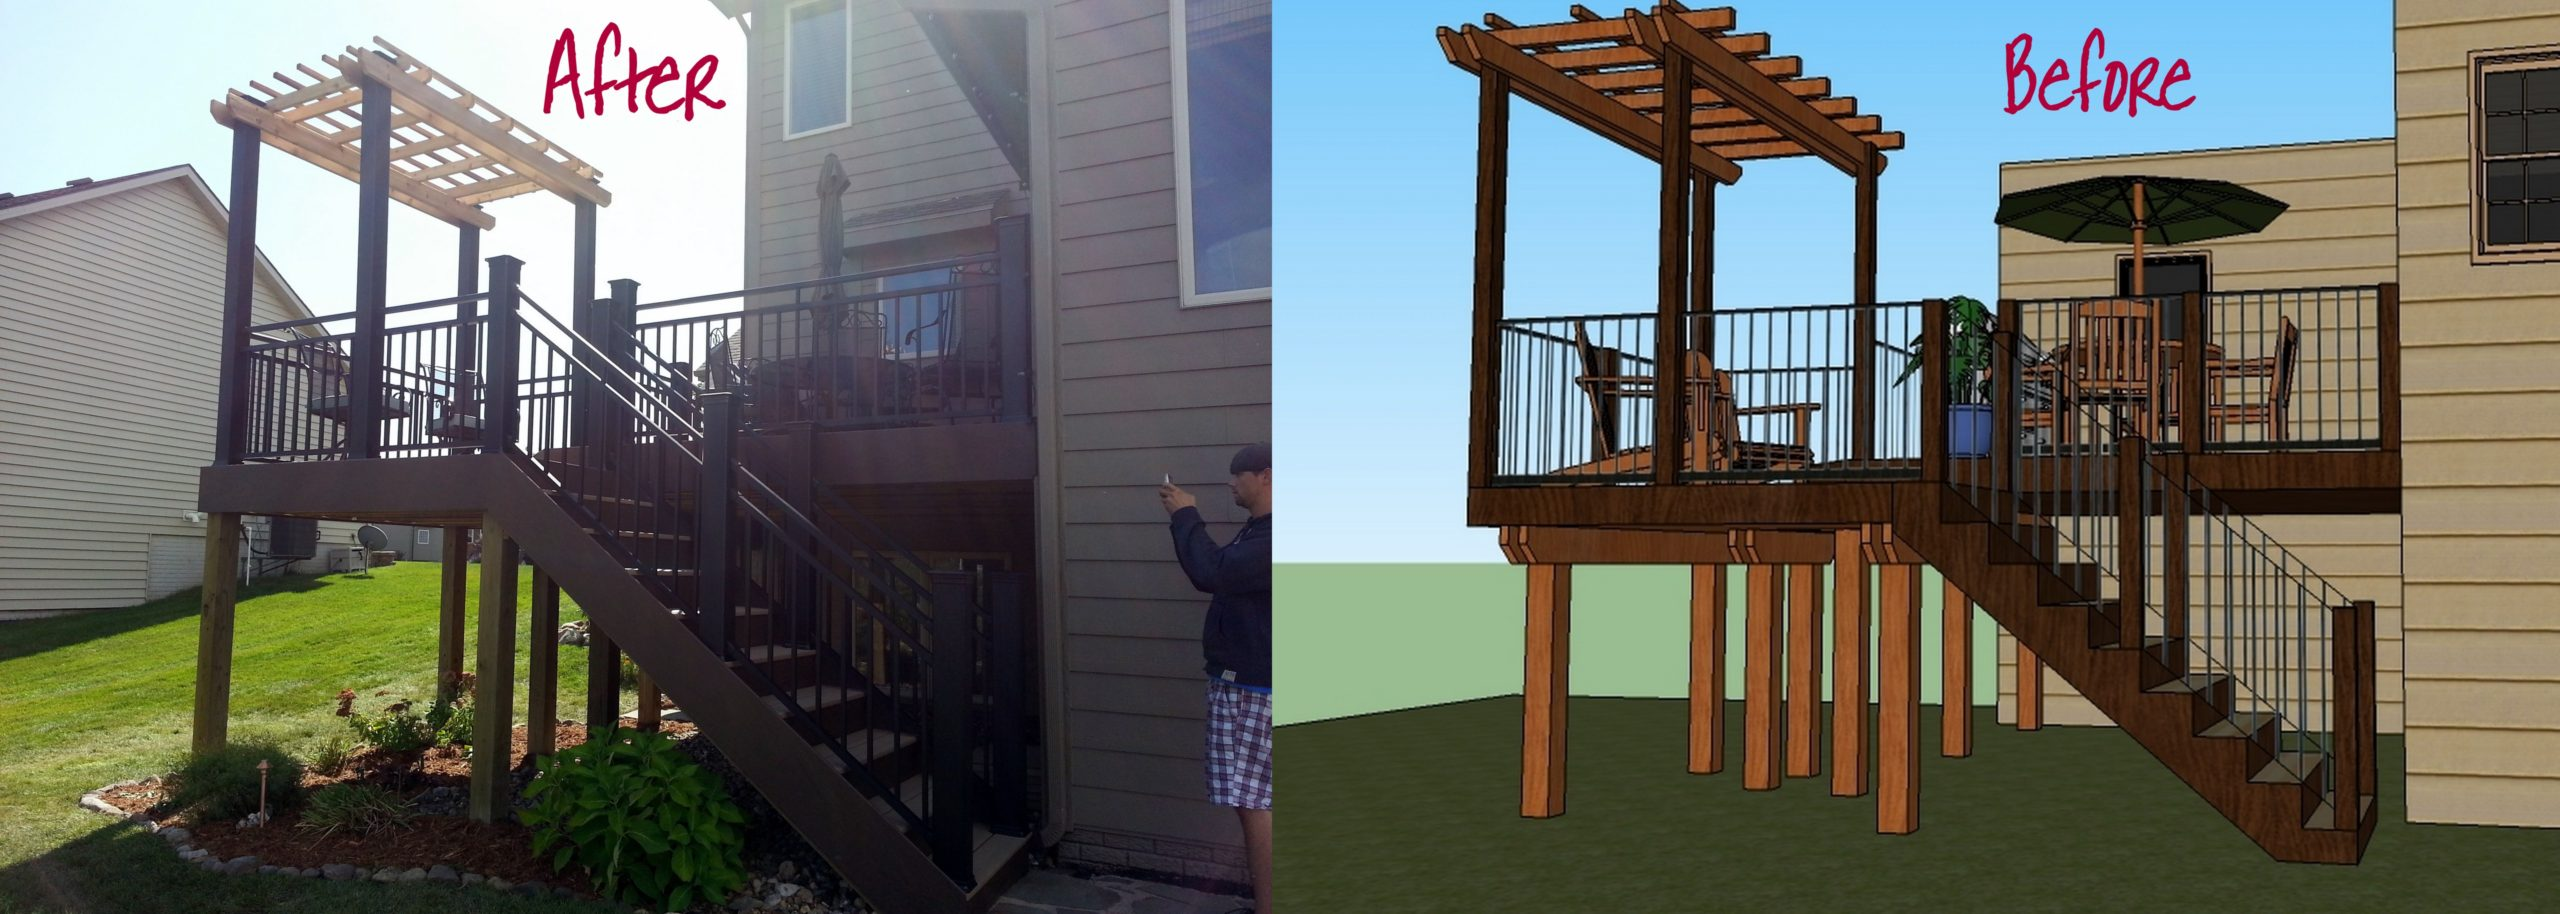 3D Schematic, Deck Design, Before and After